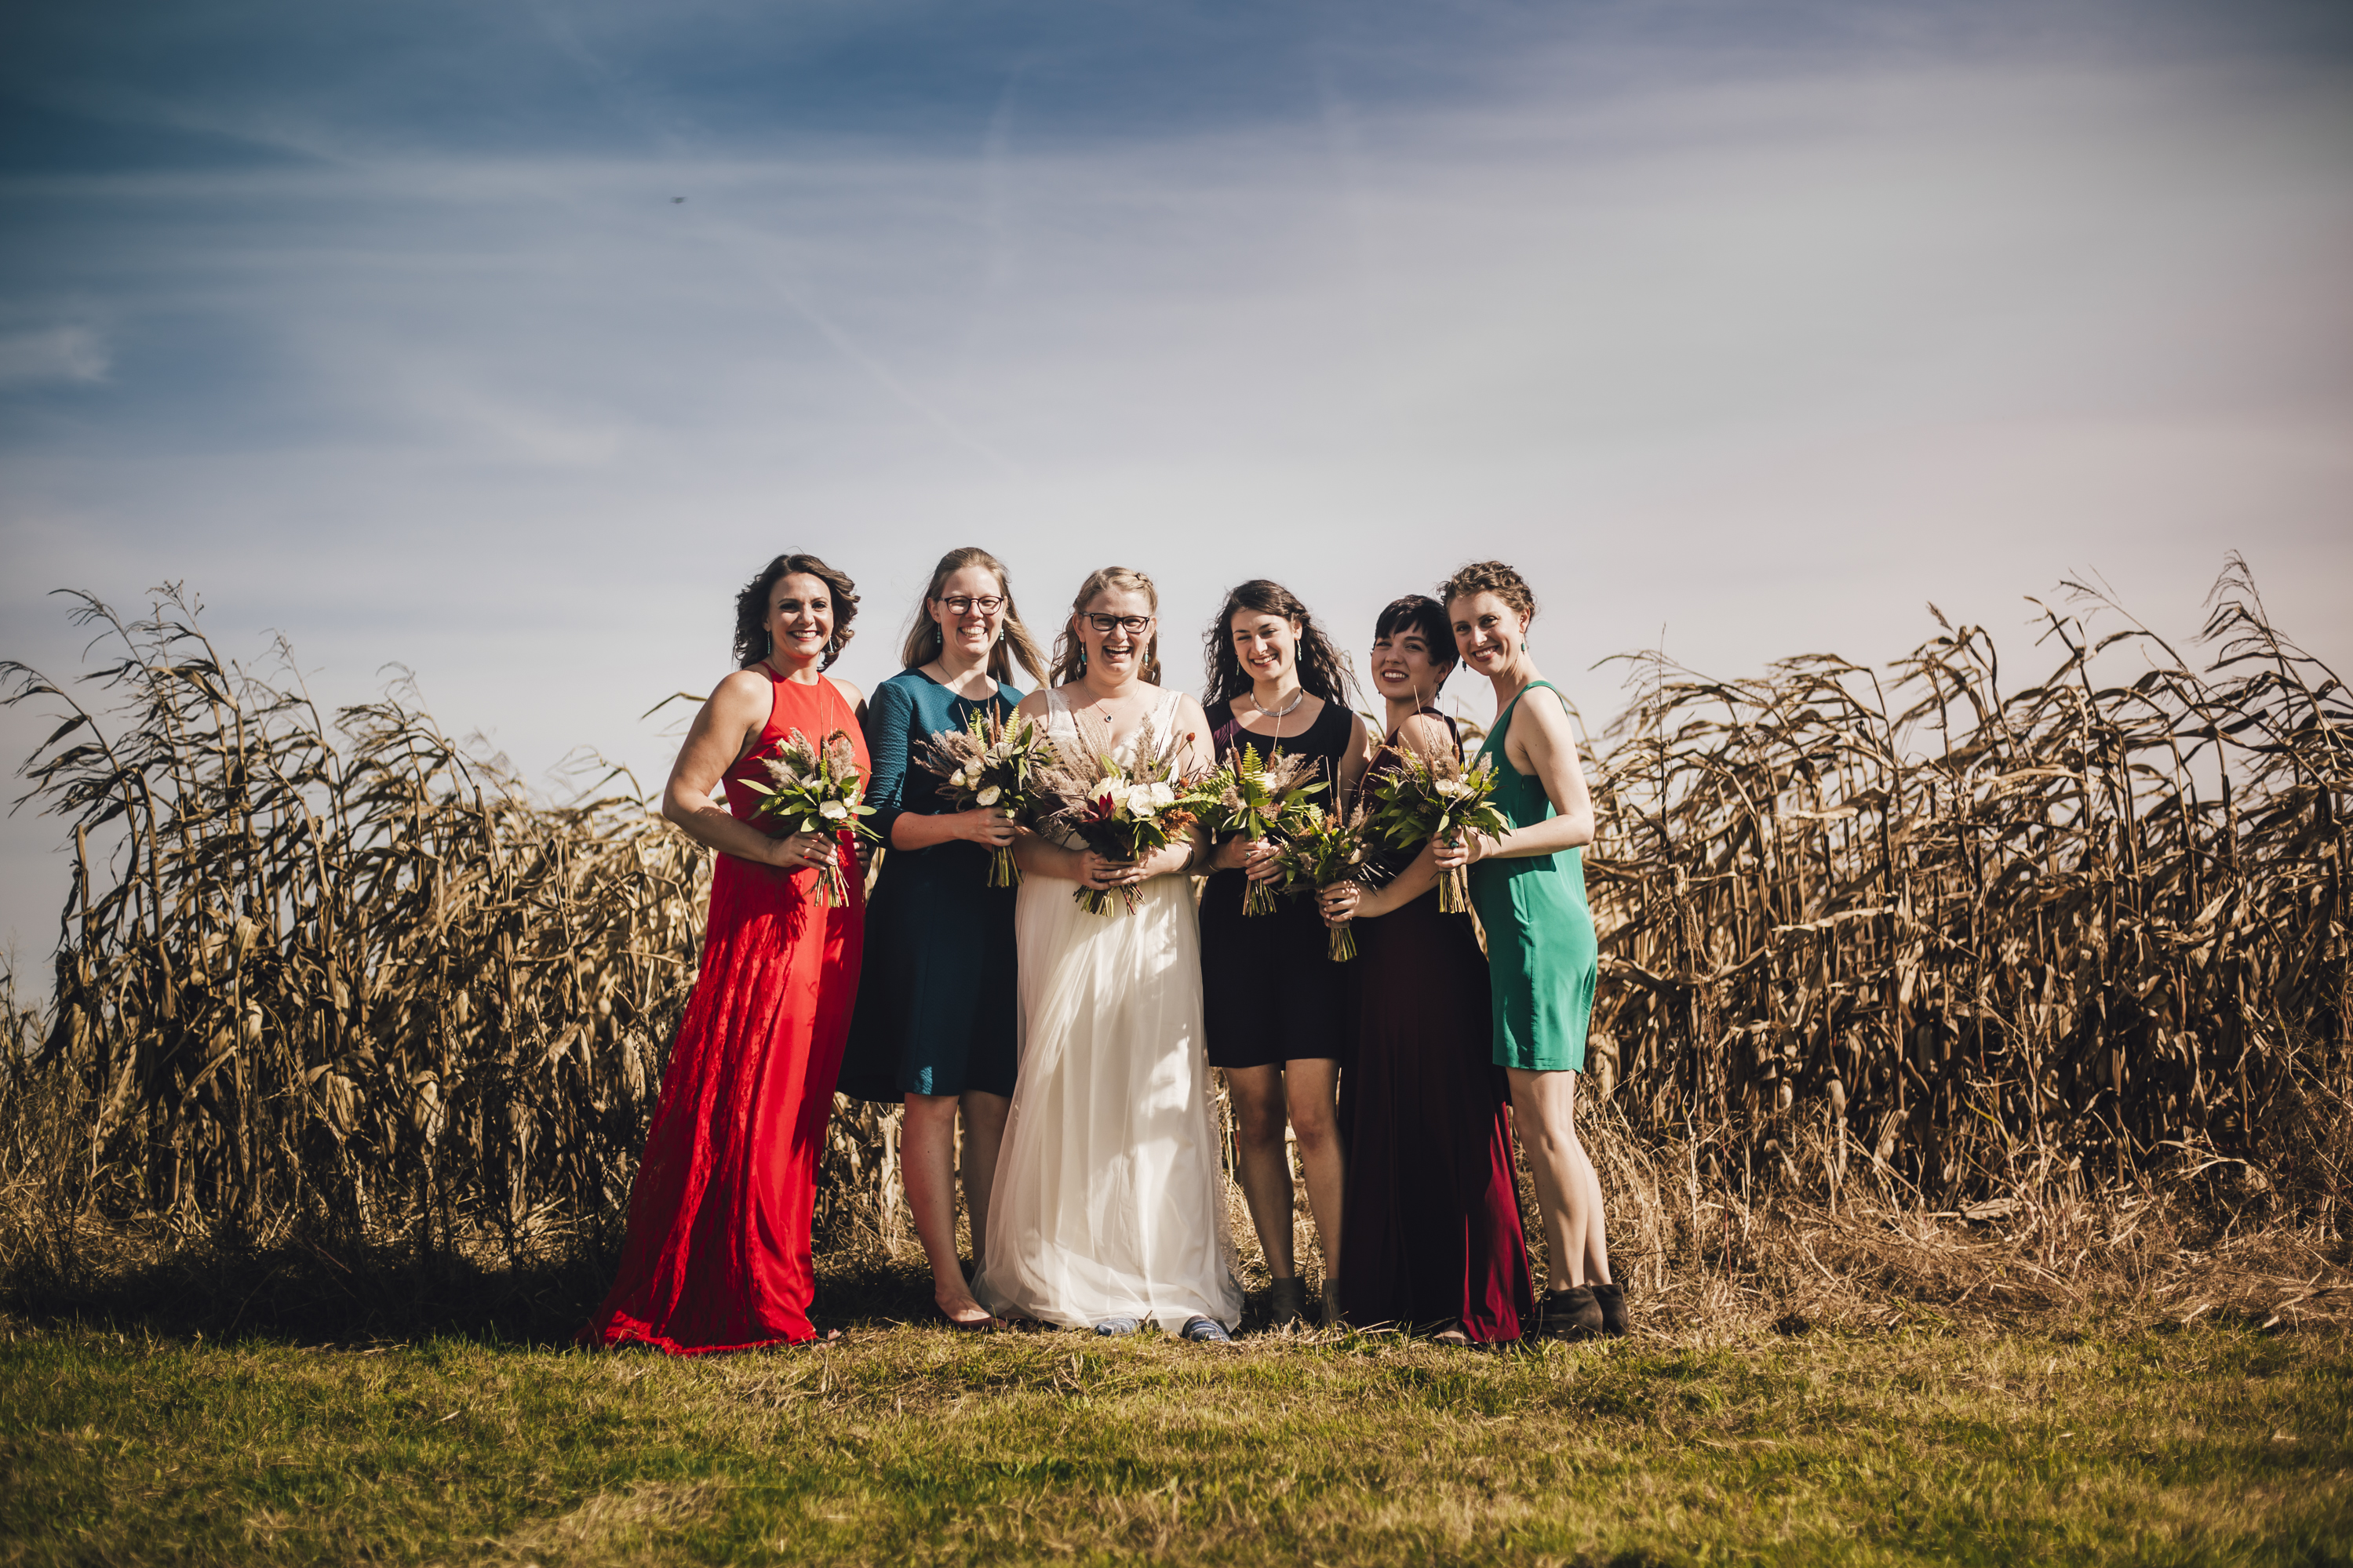 NicoleScotty_Wedding_ErikaTownsleyPhotography-205